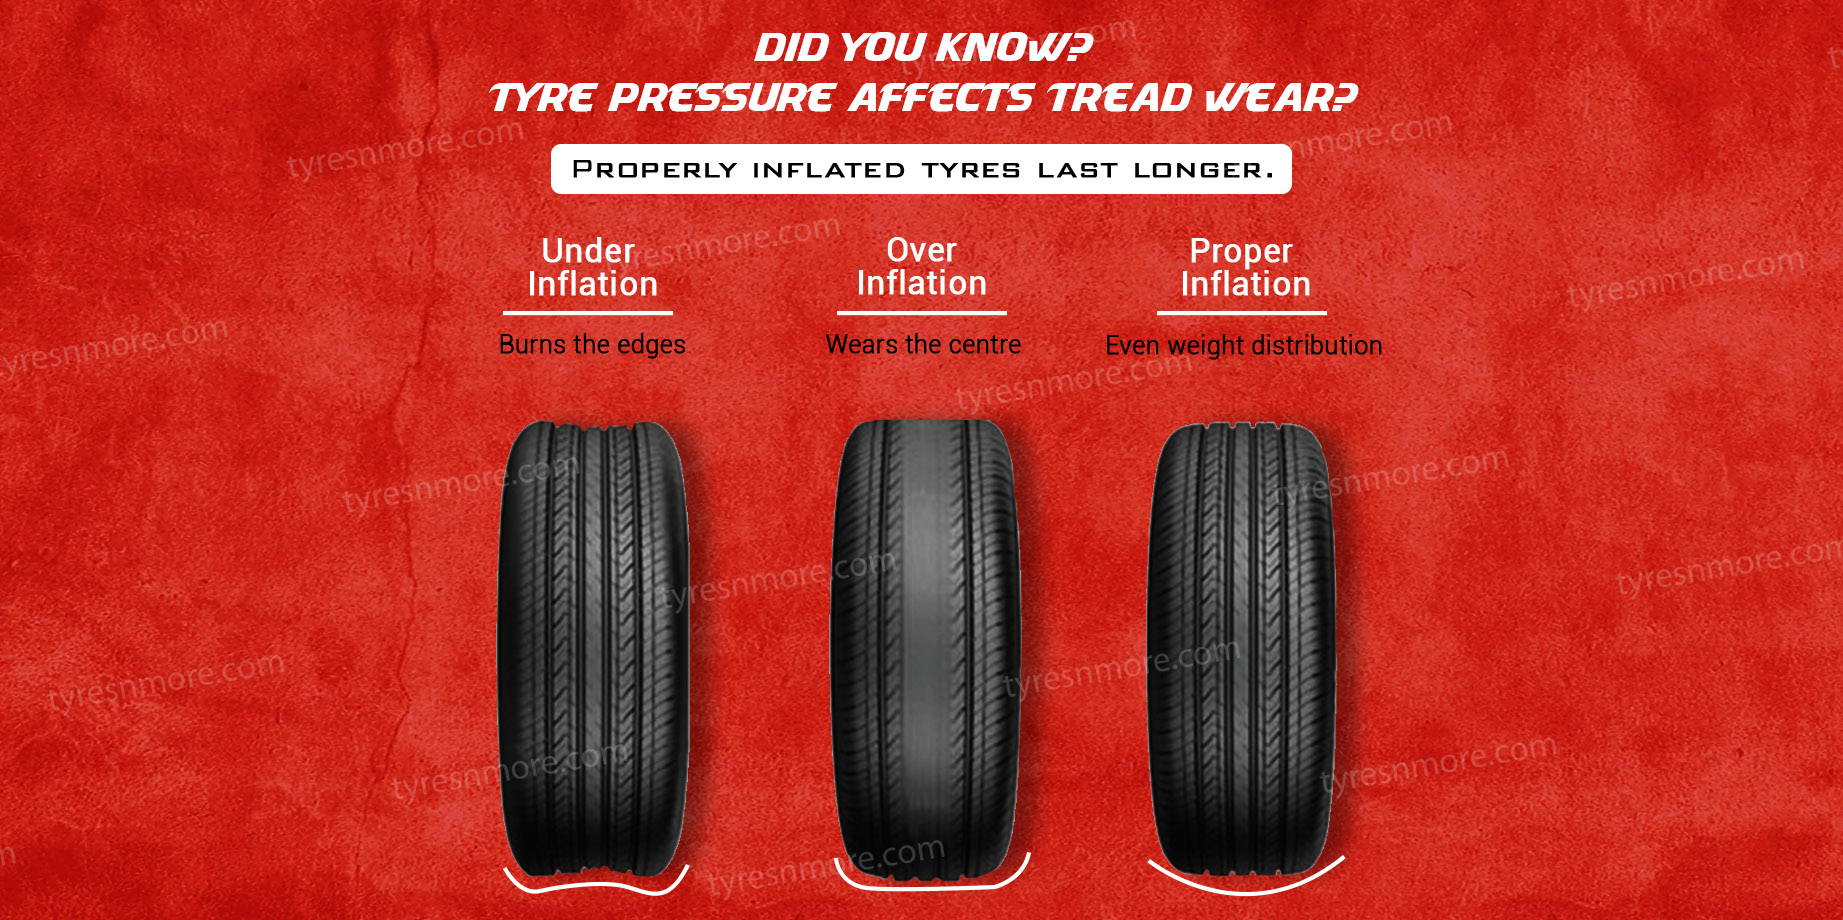 Why you should maintain recommended tyre air pressure?